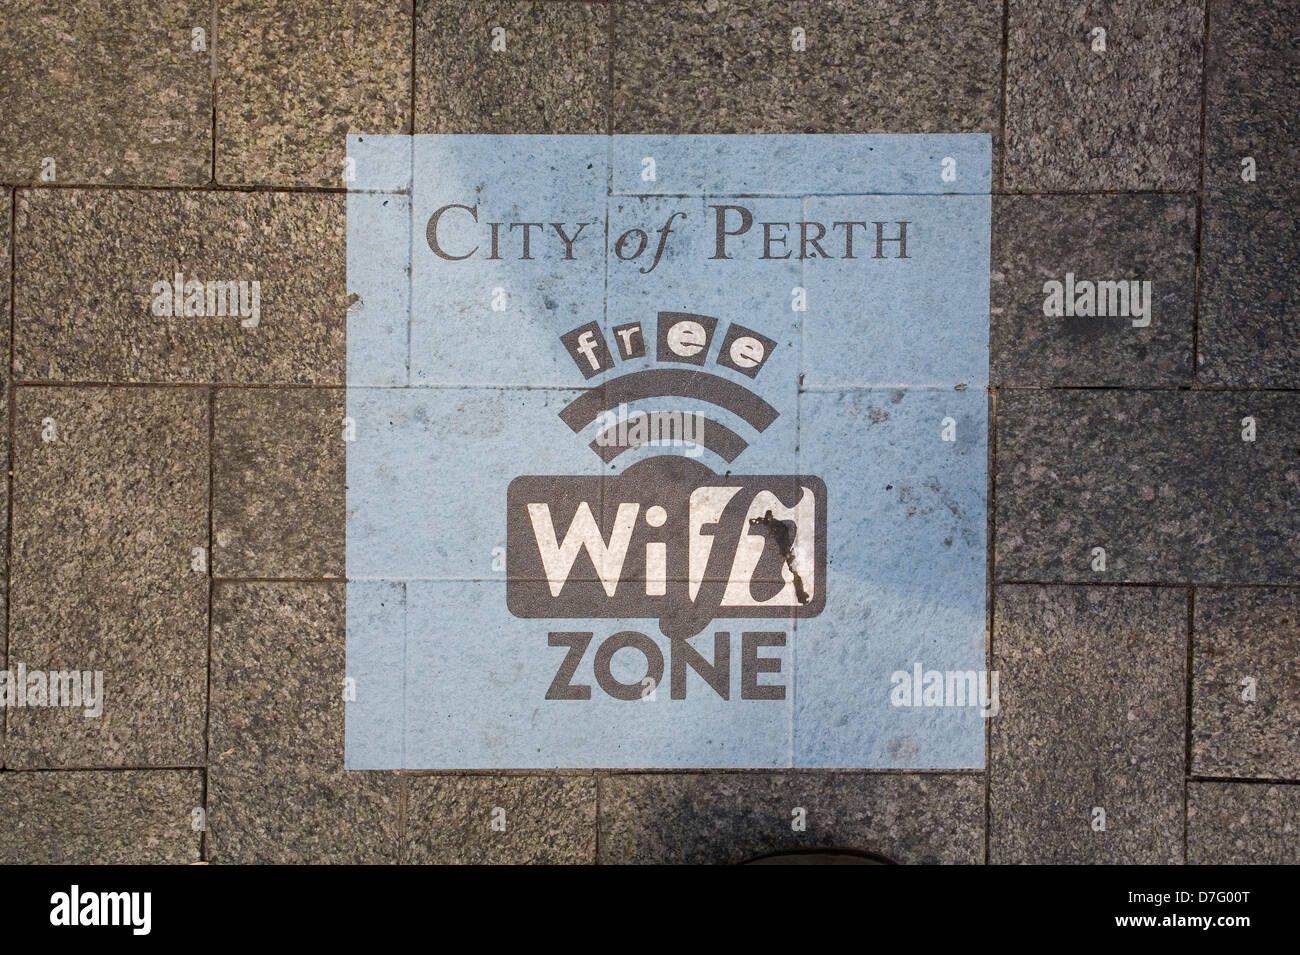 Free Wifi zone symbole sur le sentier menant au centre de Perth, Australie occidentale. Photo Stock